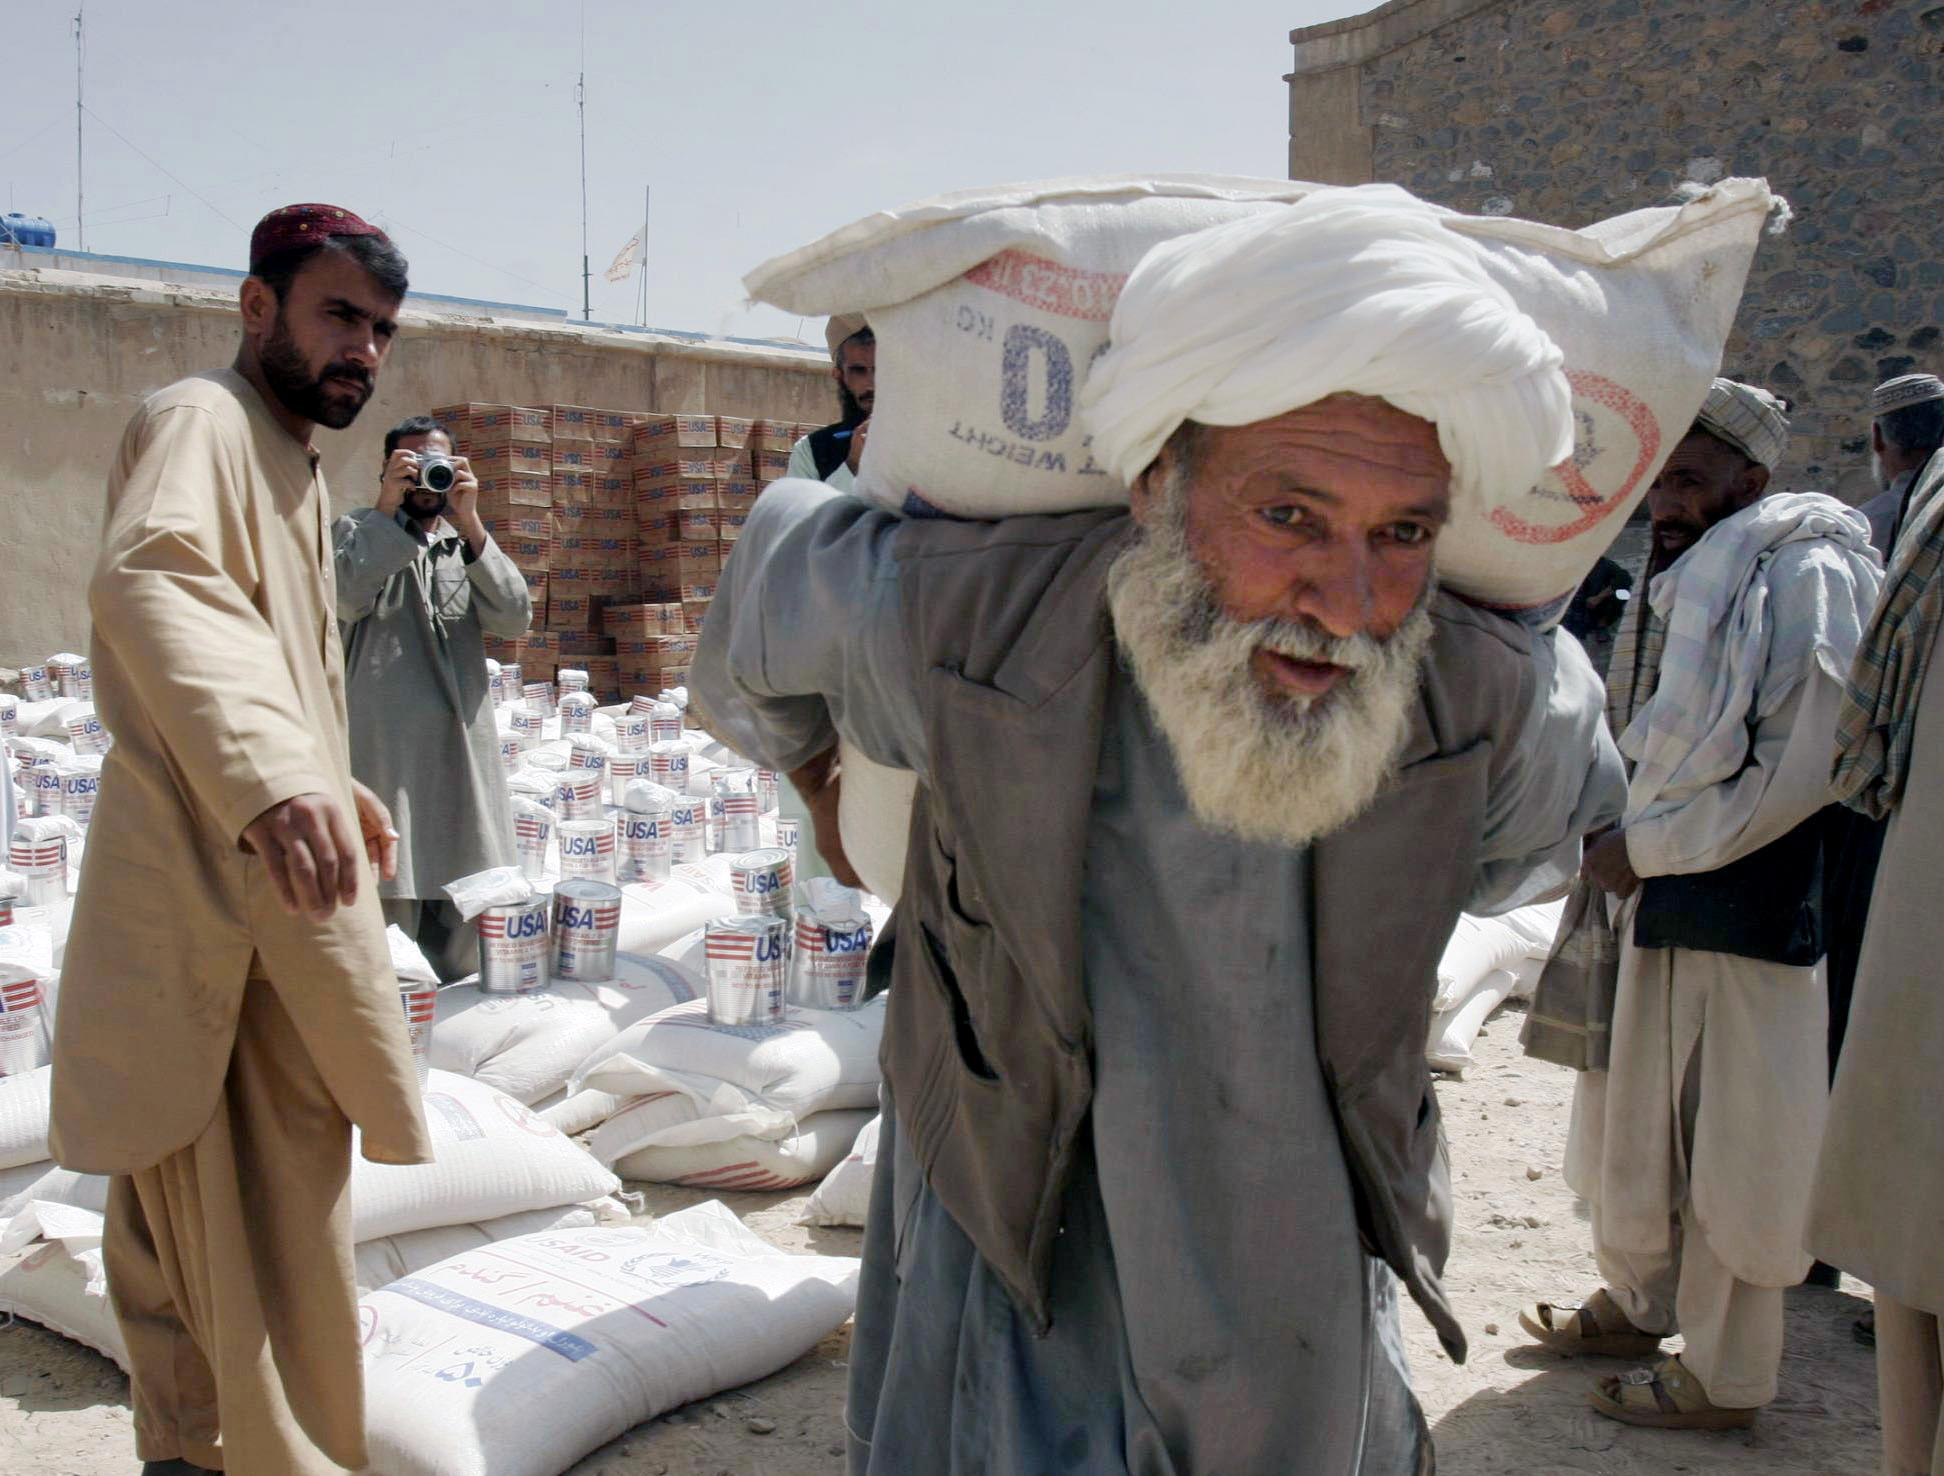 AP Interview: US must address waste, fraud in Afghan aid